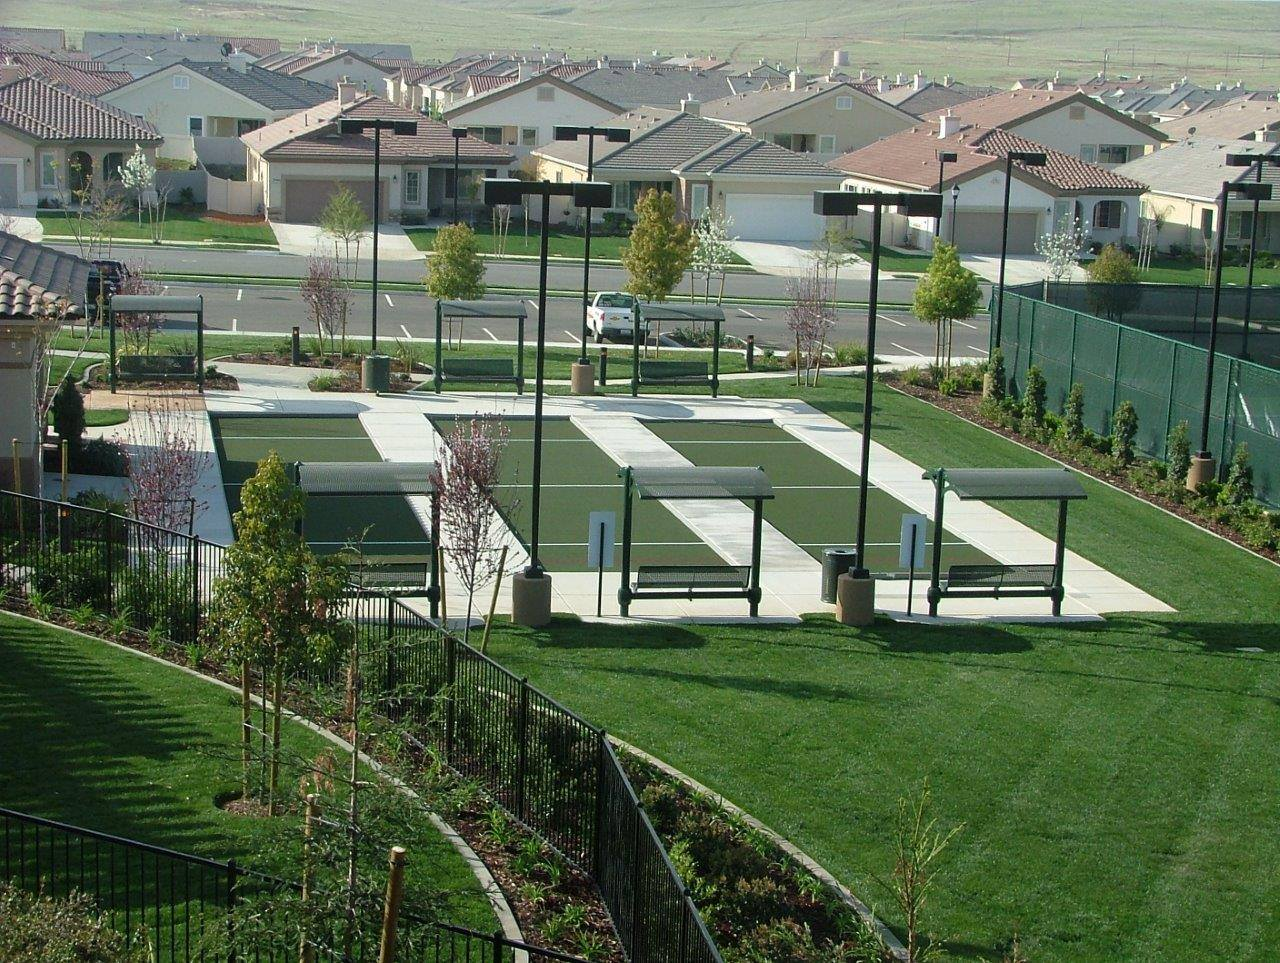 bocce ball sports surfacing by Courts and Greens in Bakersfield